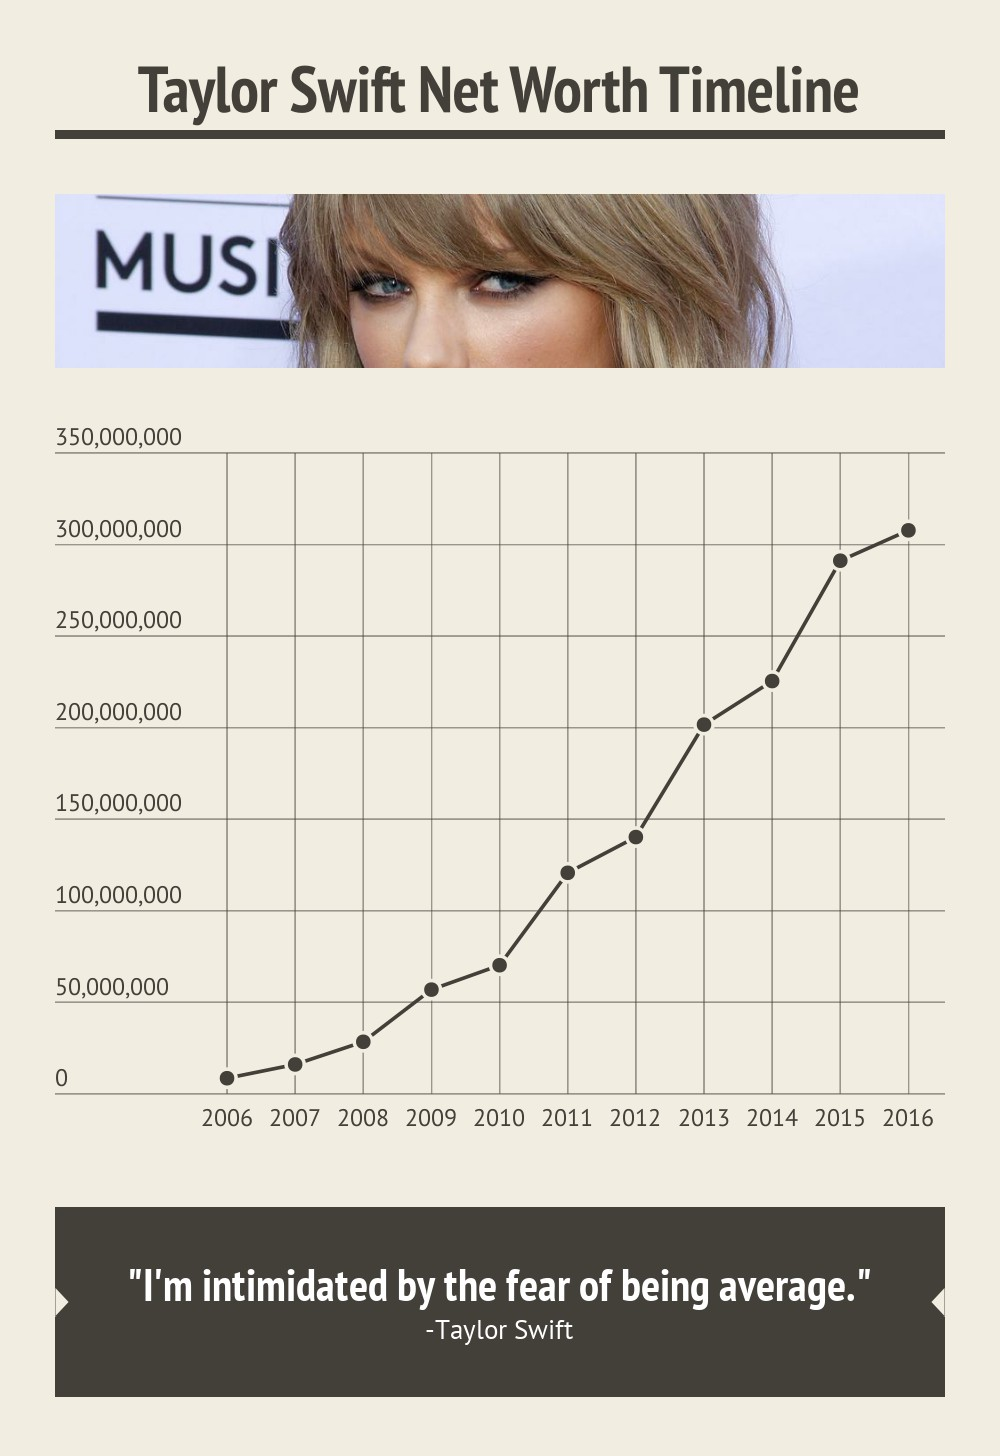 Taylor Swift Net Worth Timeline